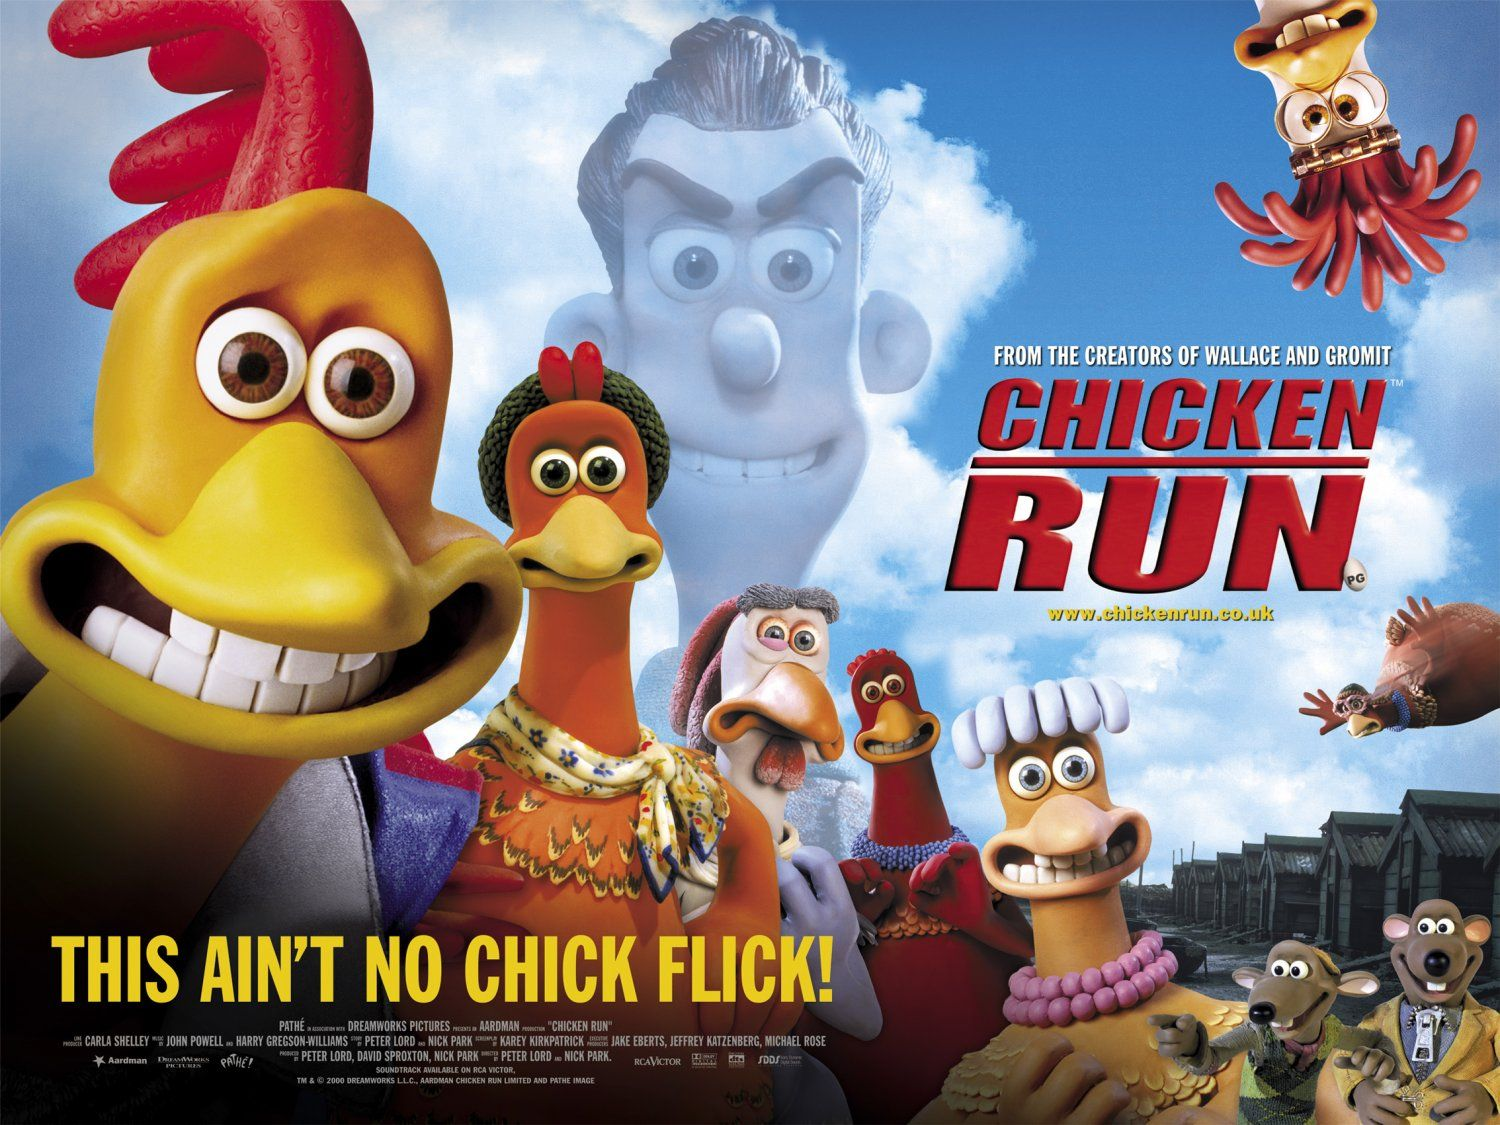 Return to the main poster page for Chicken Run Aardman